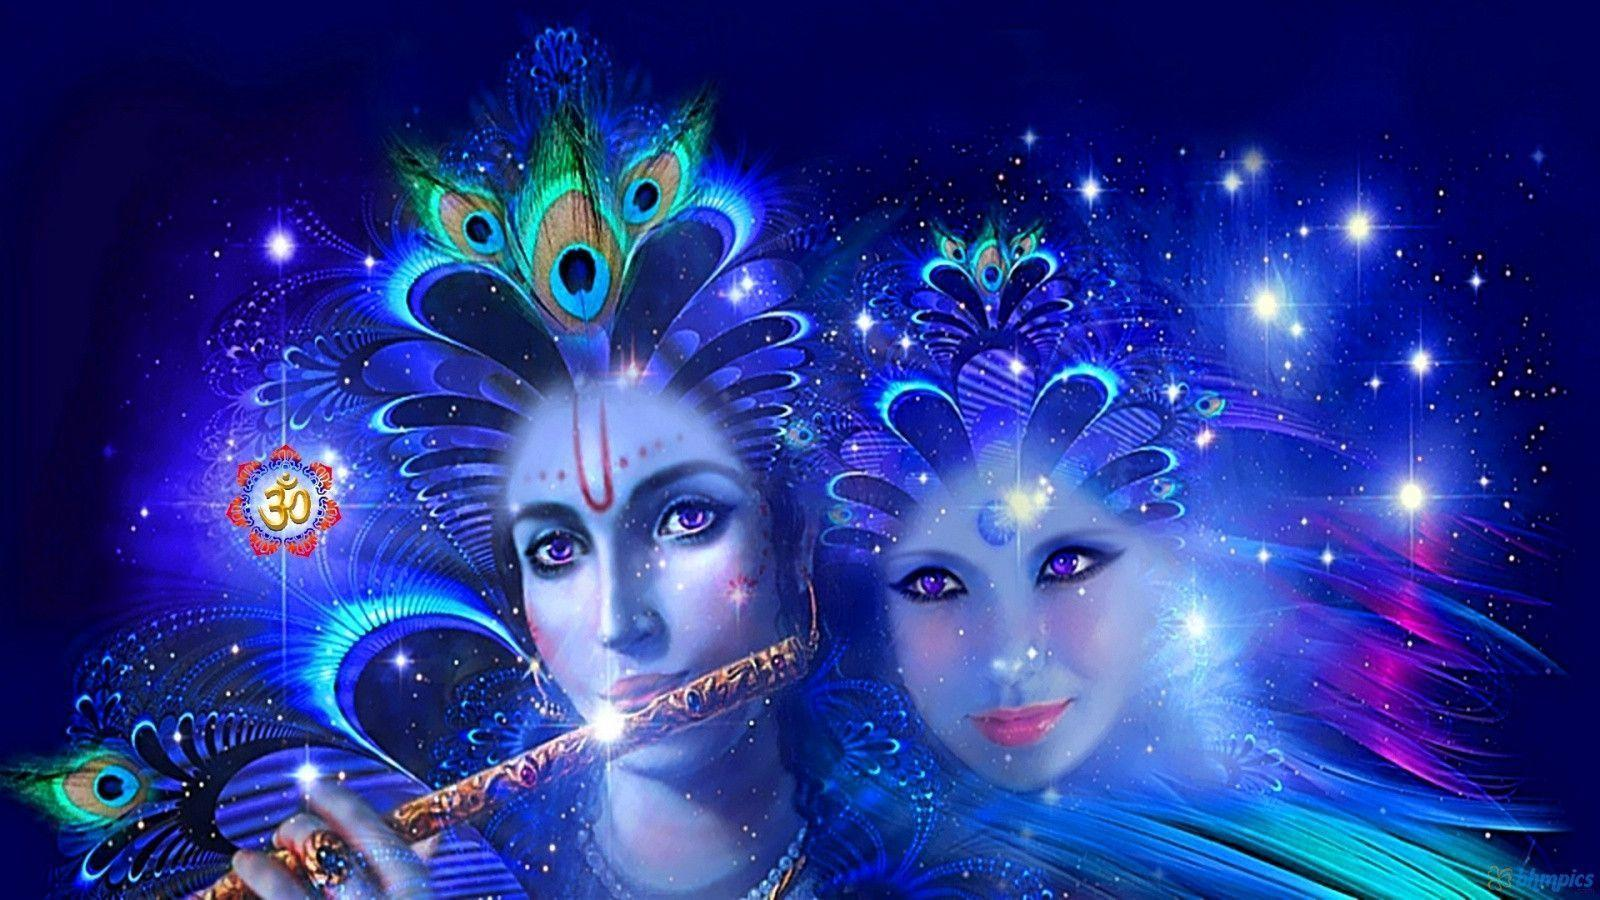 3d Hd Wallpaper Radha Krishna Download #363 Wallpaper .